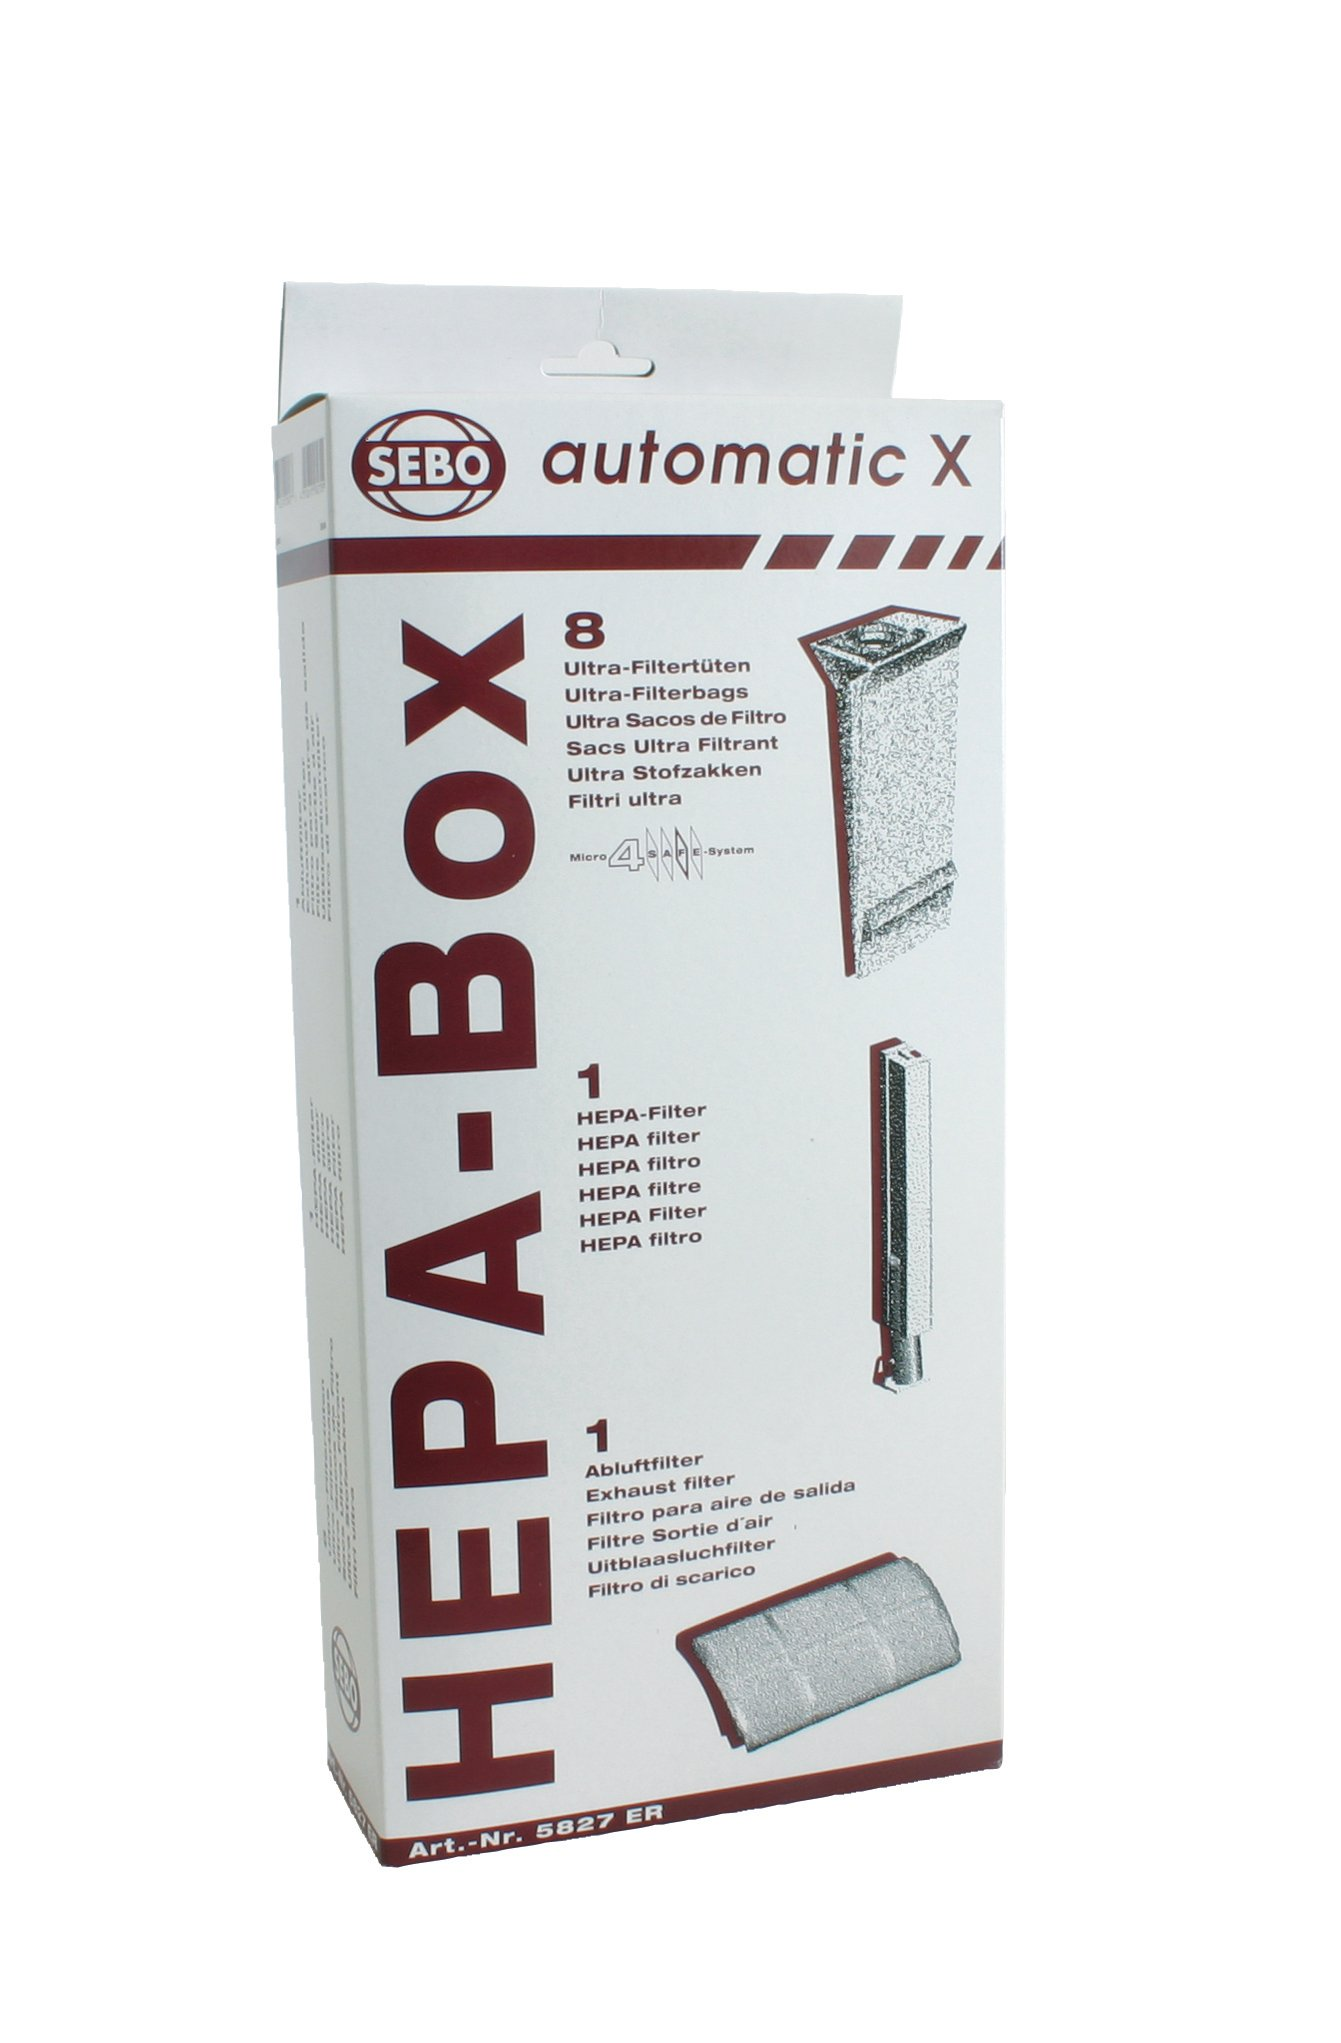 Sebo 5827ER HEPA Service Box for X Series Vacuum with 8 Ultra Bags, Exhaust Filter and HEPA Microfilter by Sebo